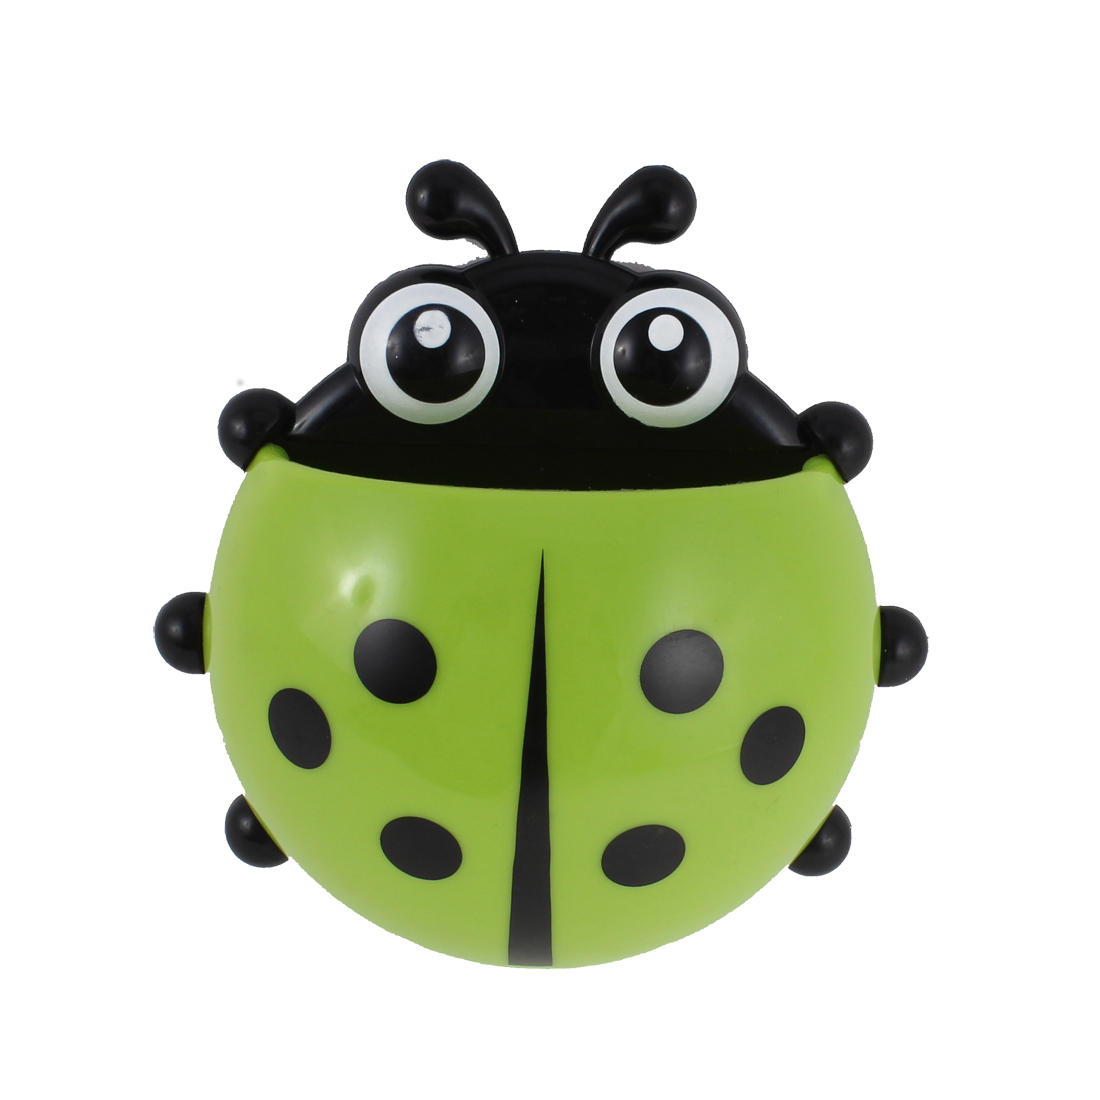 Wall Suction Stand Ladybird Design Toothbrush Organizer Holder Green